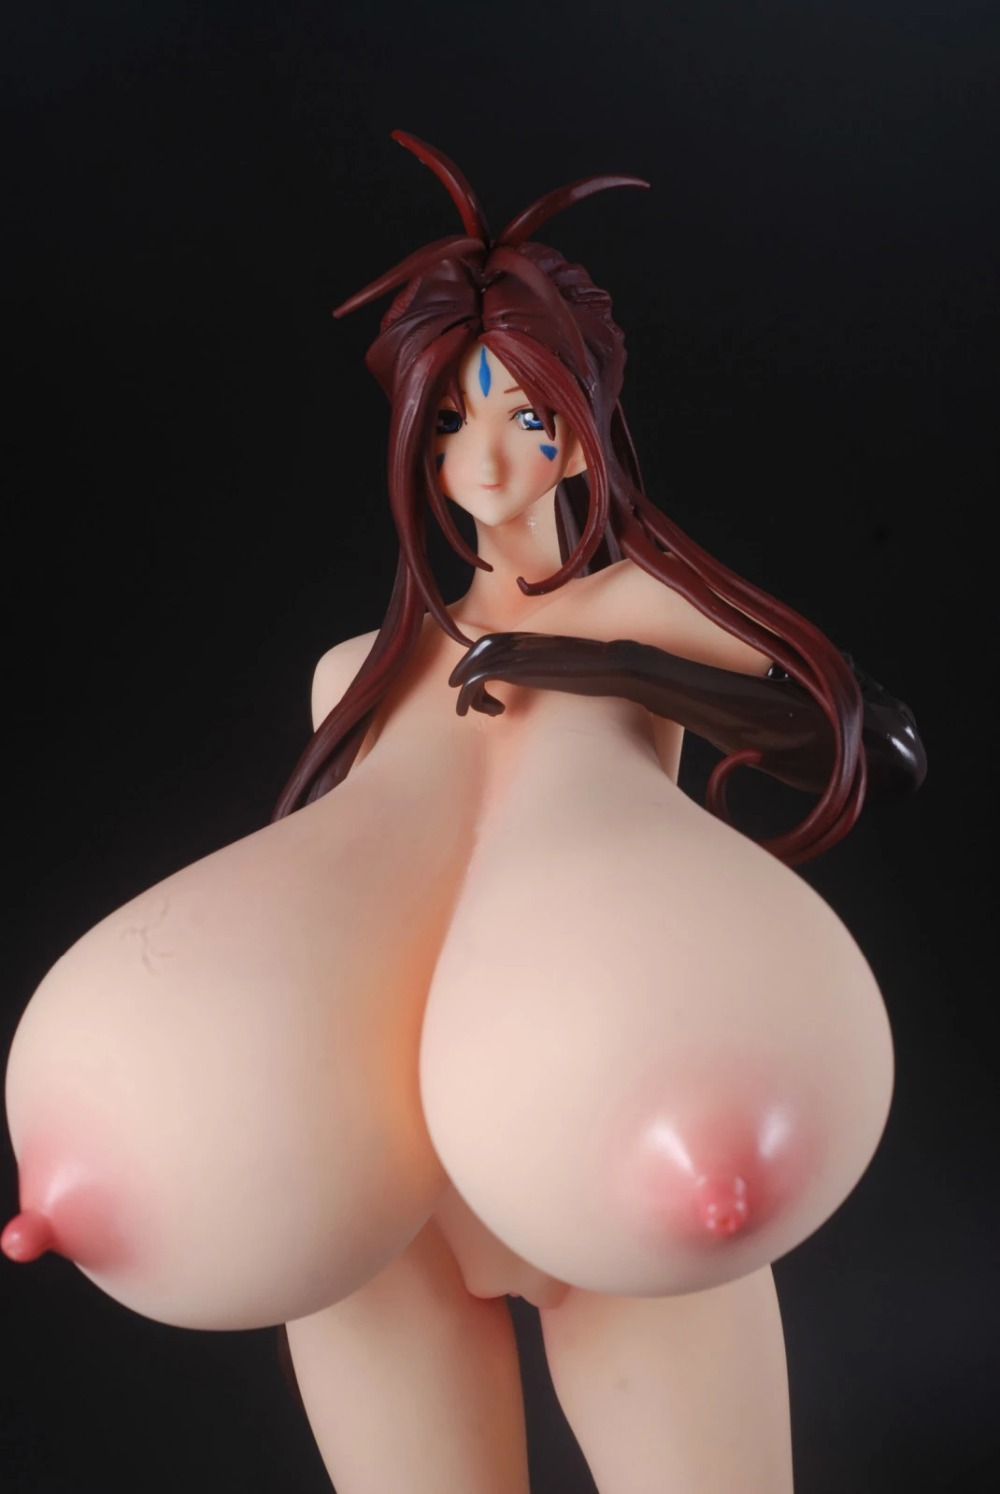 Sexy japanese anime sex doll figure